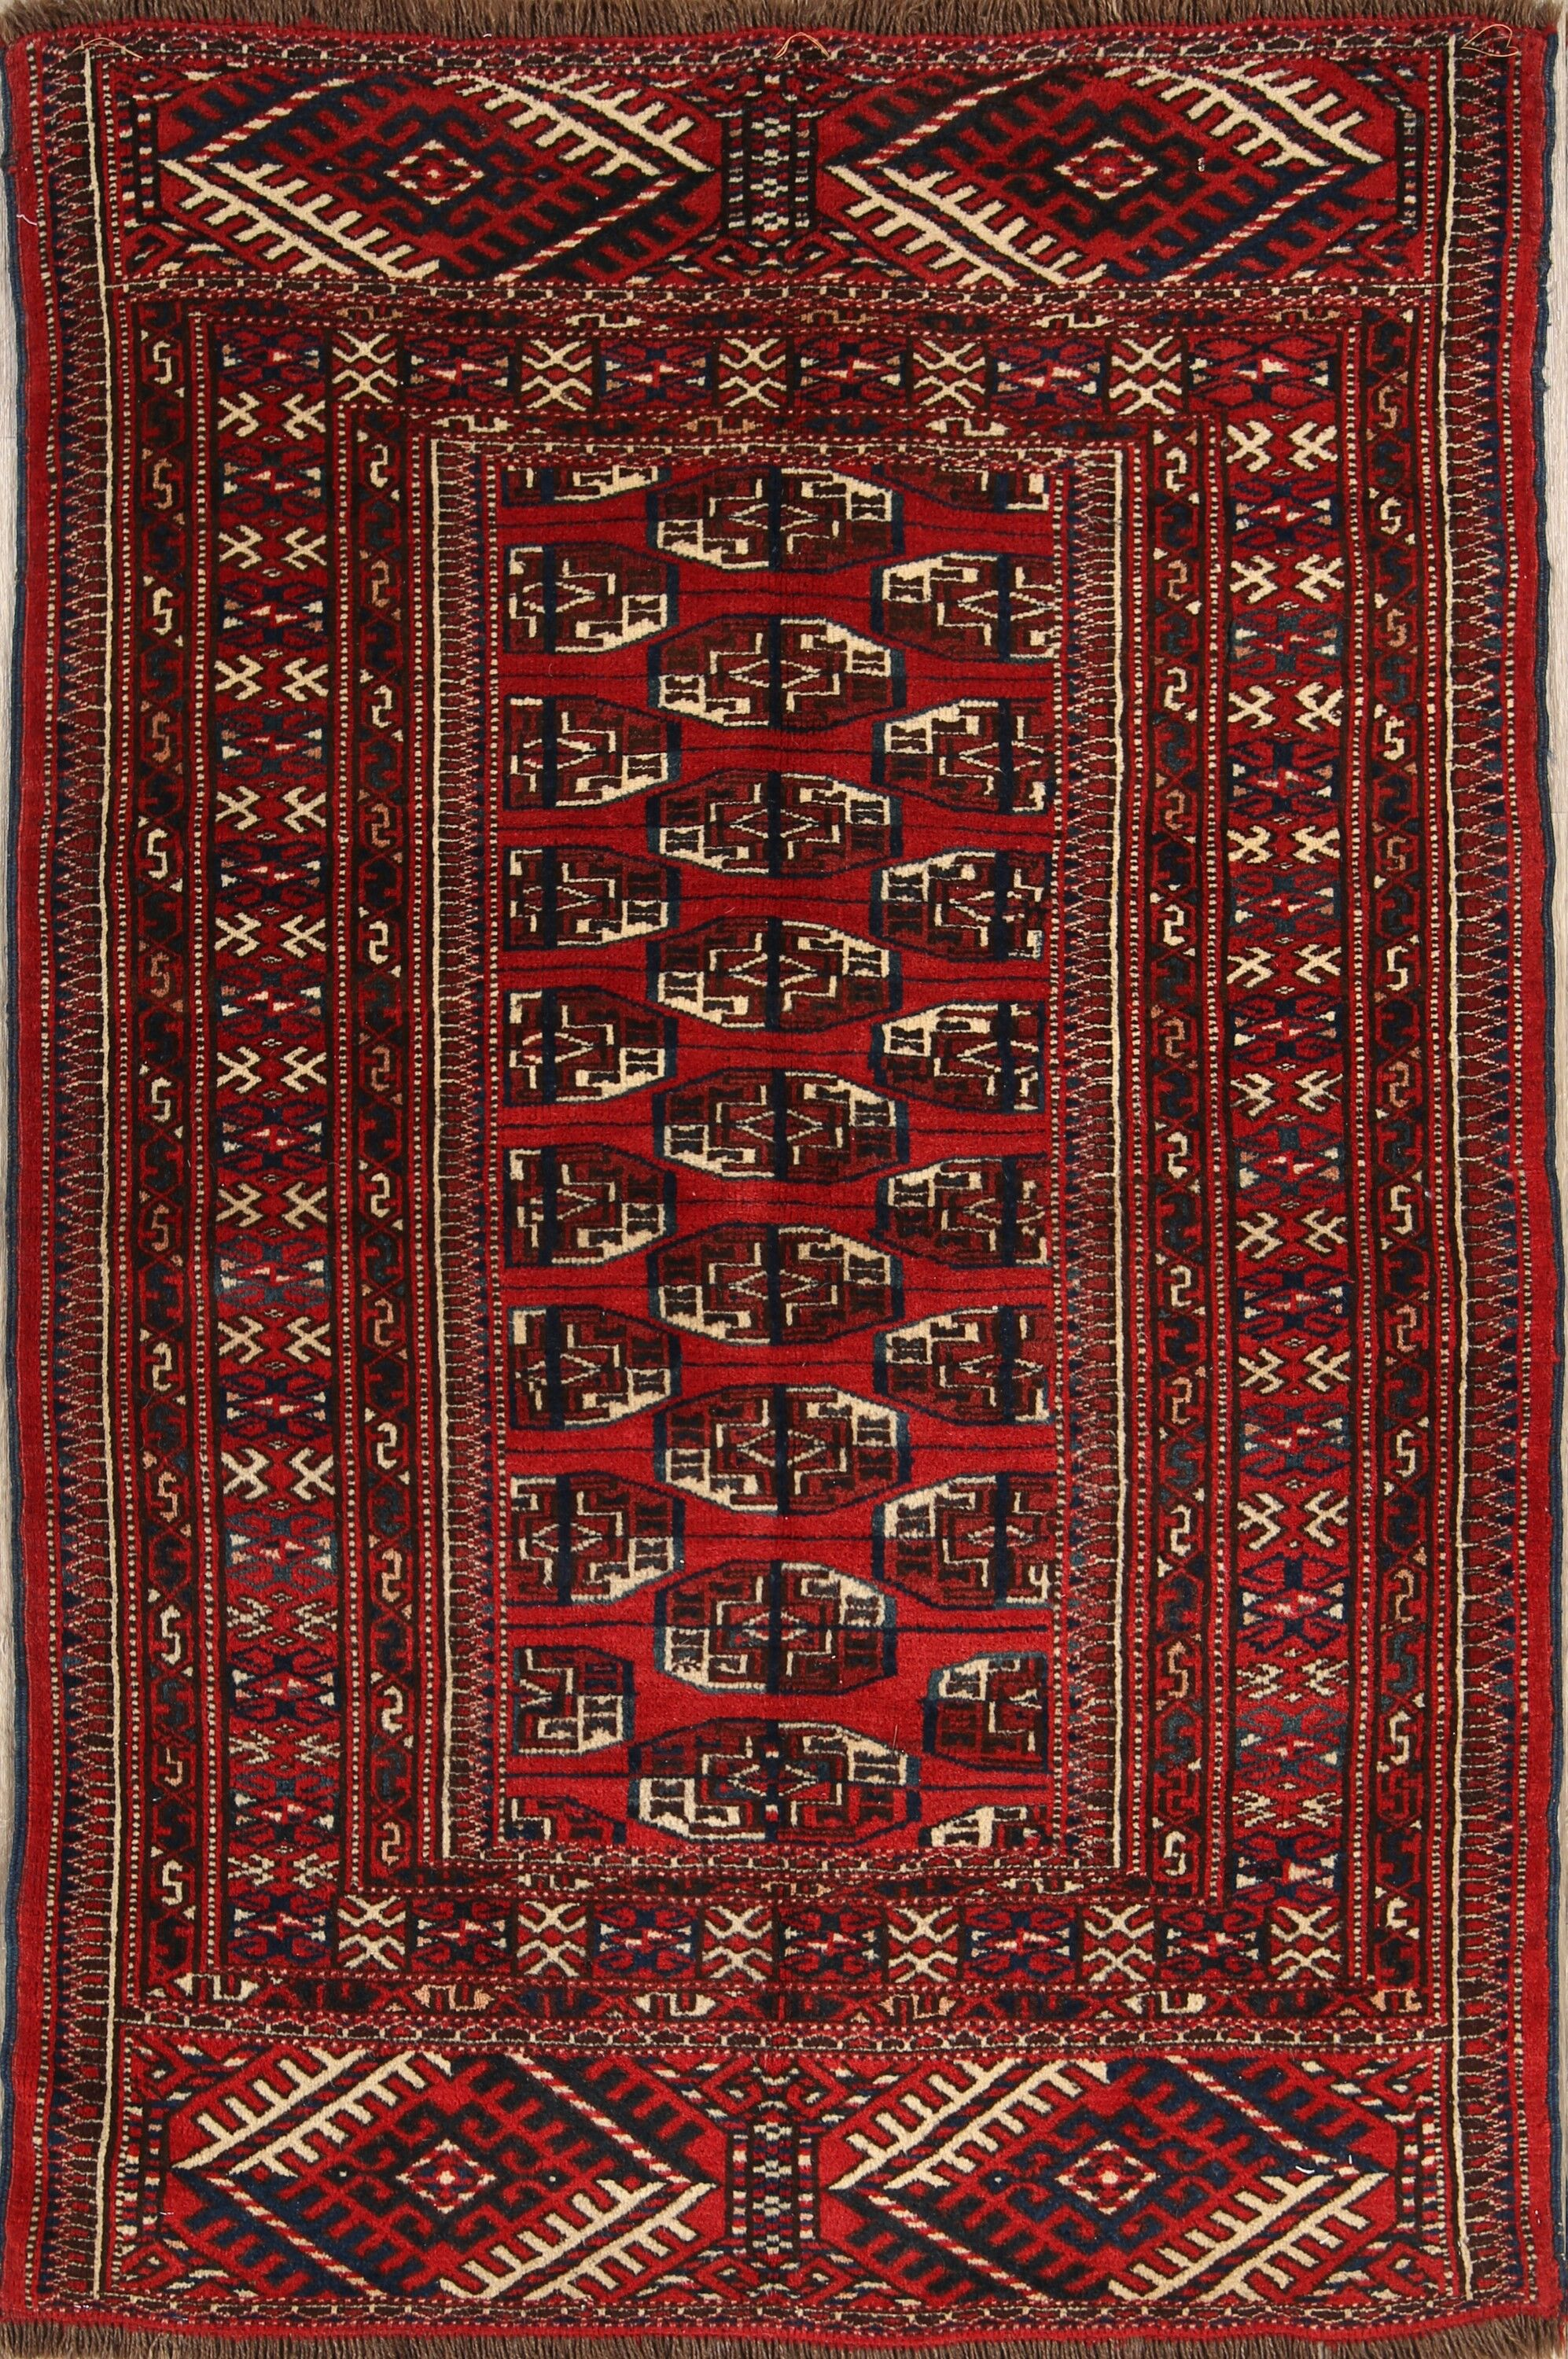 One-of-a-Kind Classical Balouch Bokhara Persian Hand-Knotted 3'4